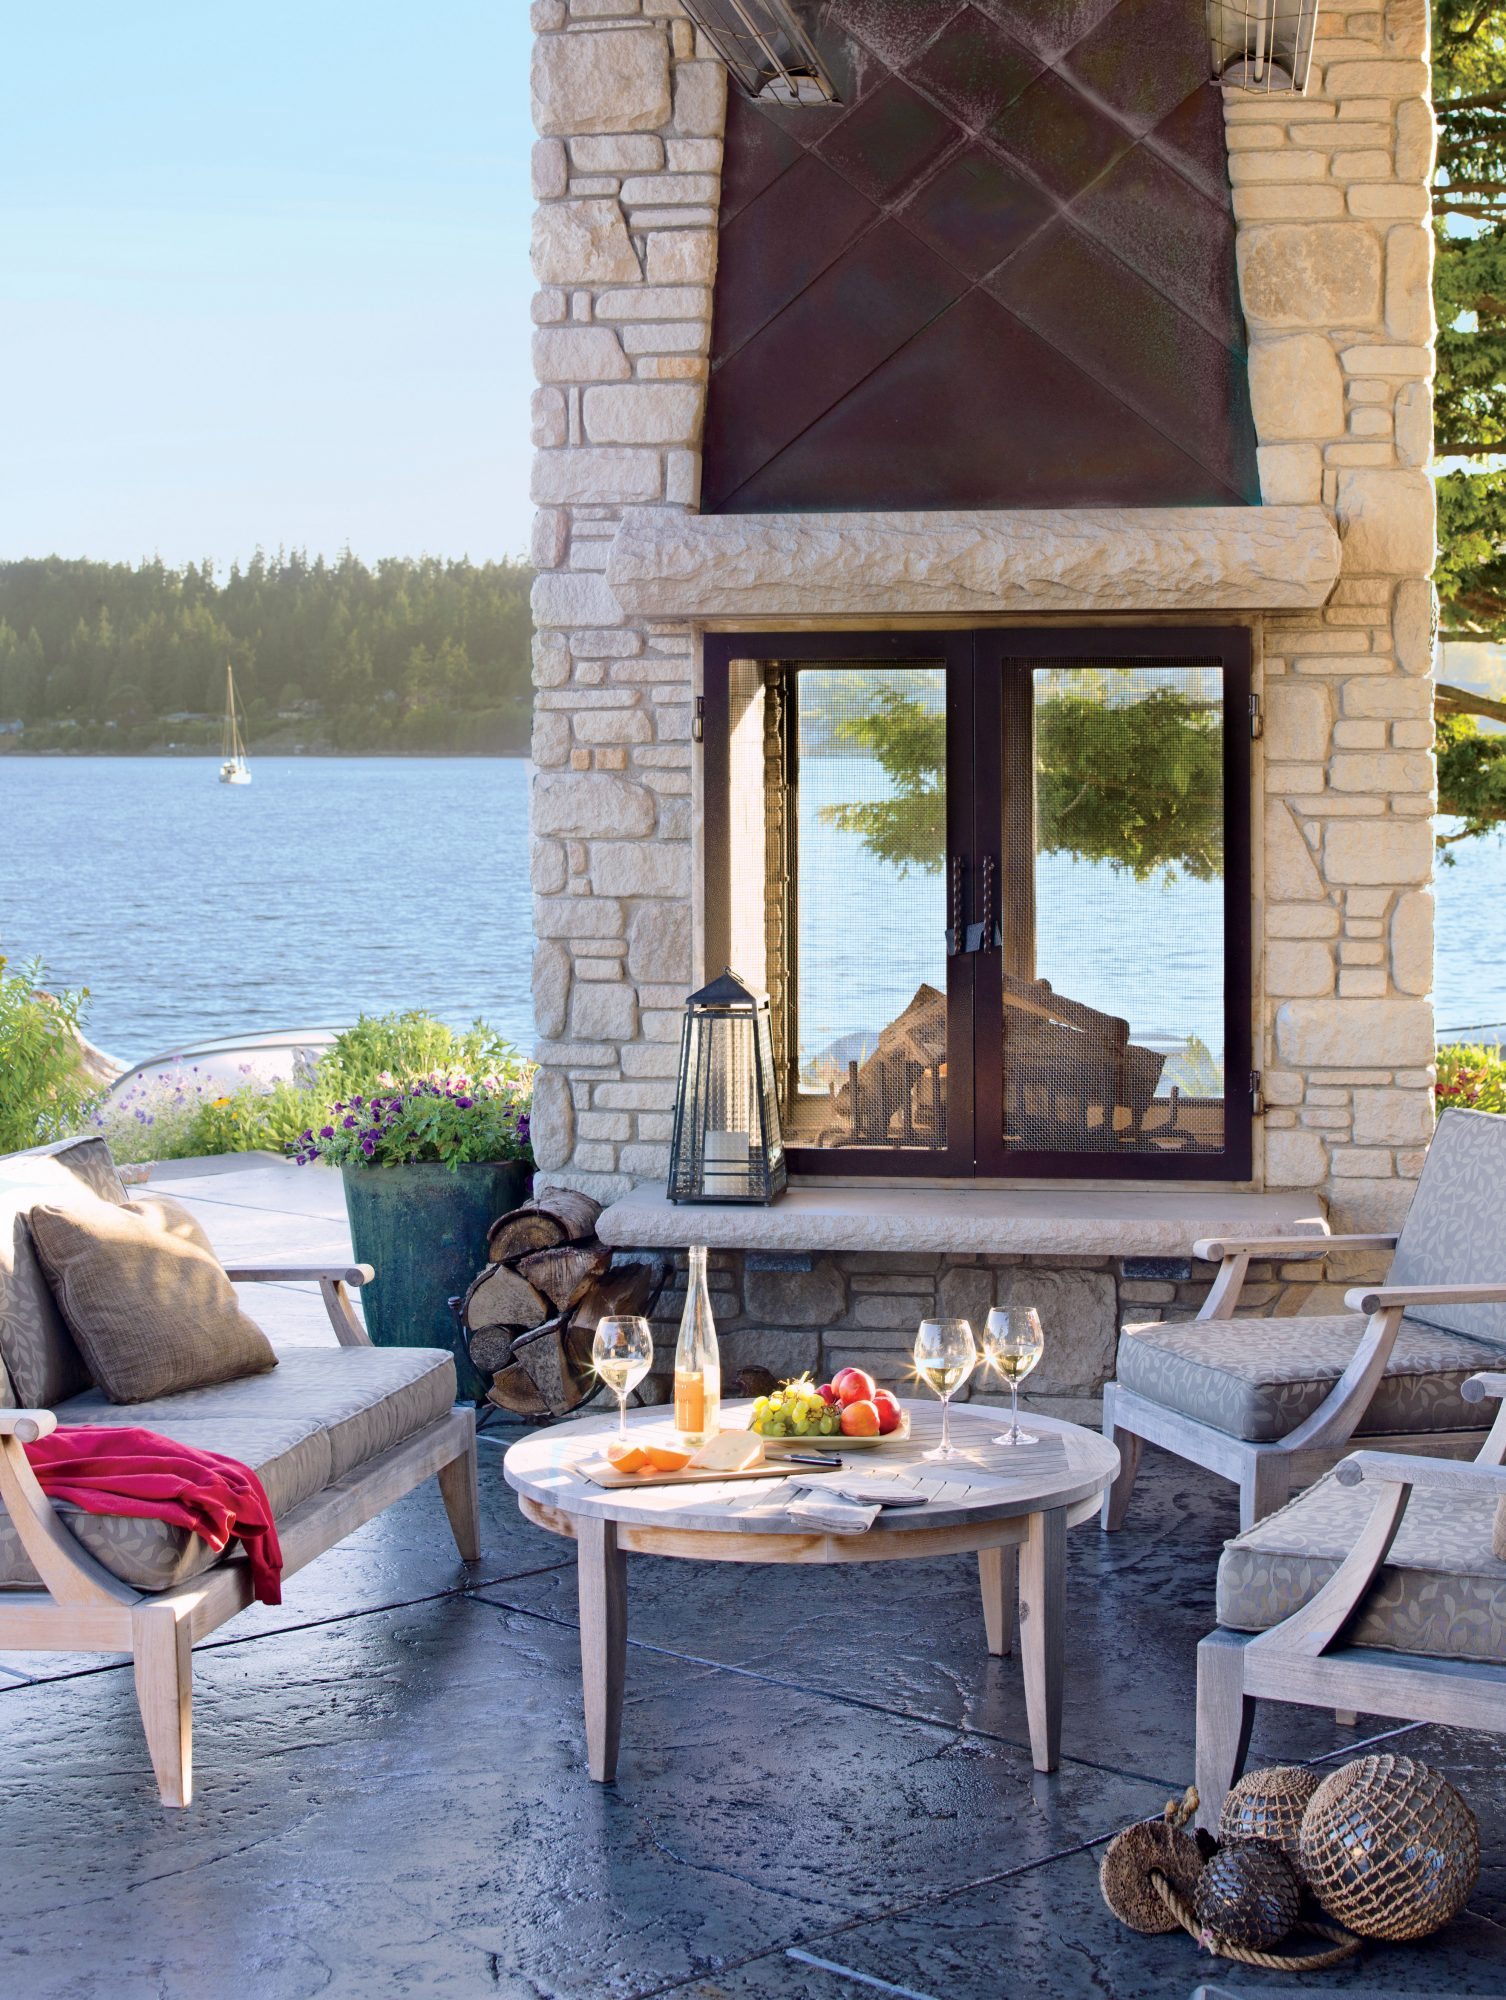 Get the Look: The furniture is from Westminster Teak. The flooring is concrete.                                       A glass-framed fireplace anchors this warm and cozy patio on Fidalgo Island, Washington.